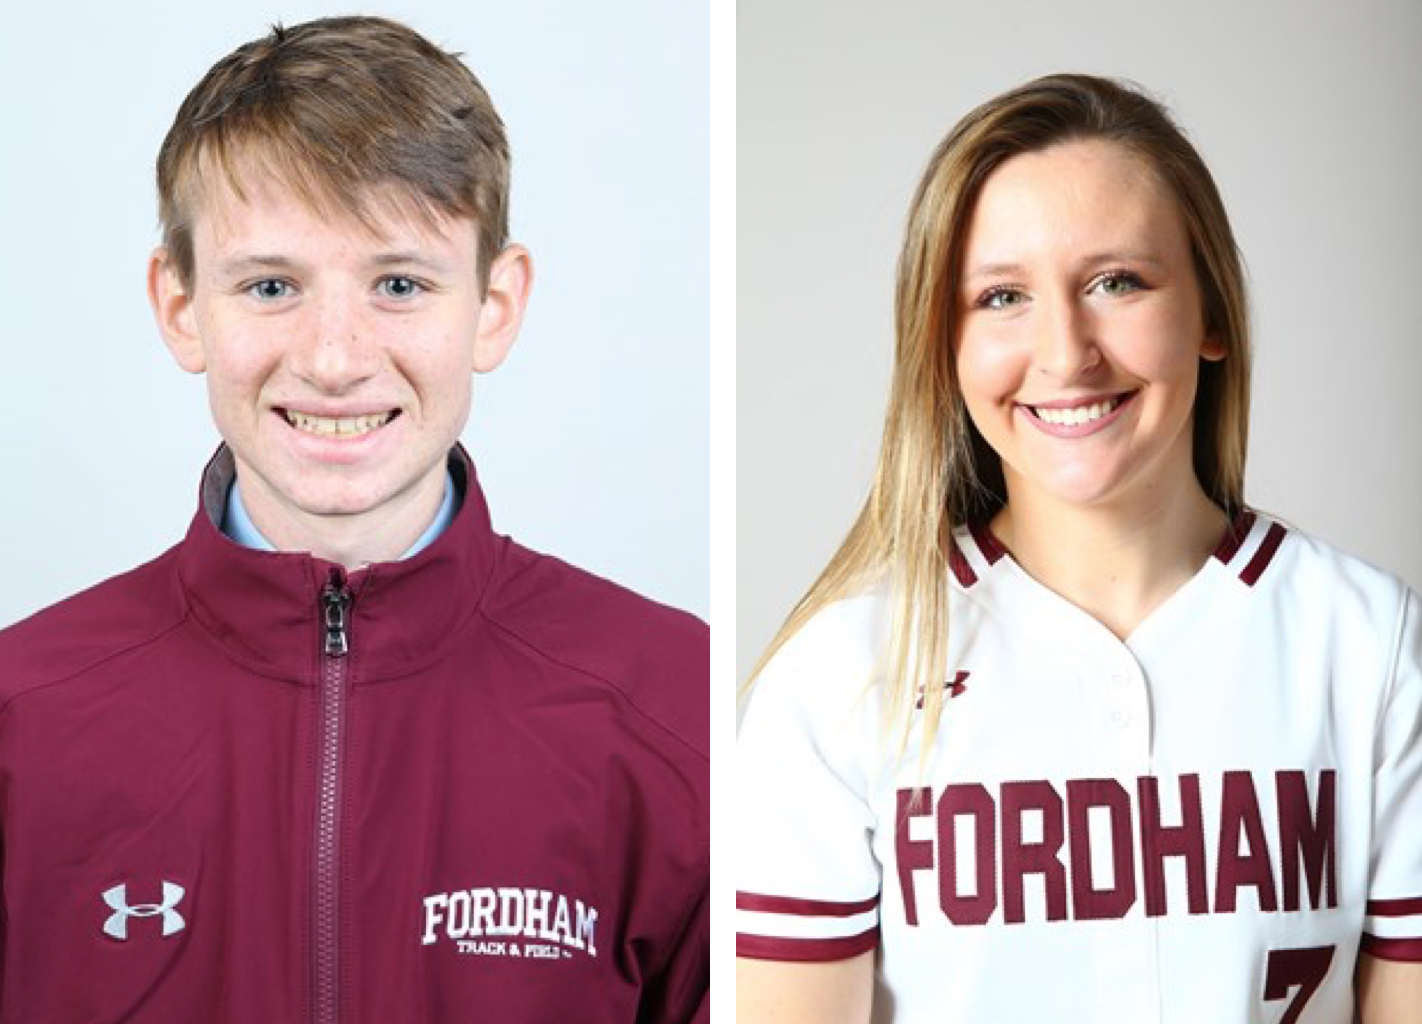 Athletes of the Week for the week of 4/3-4/9 (Courtesy of Fordham Athletics)